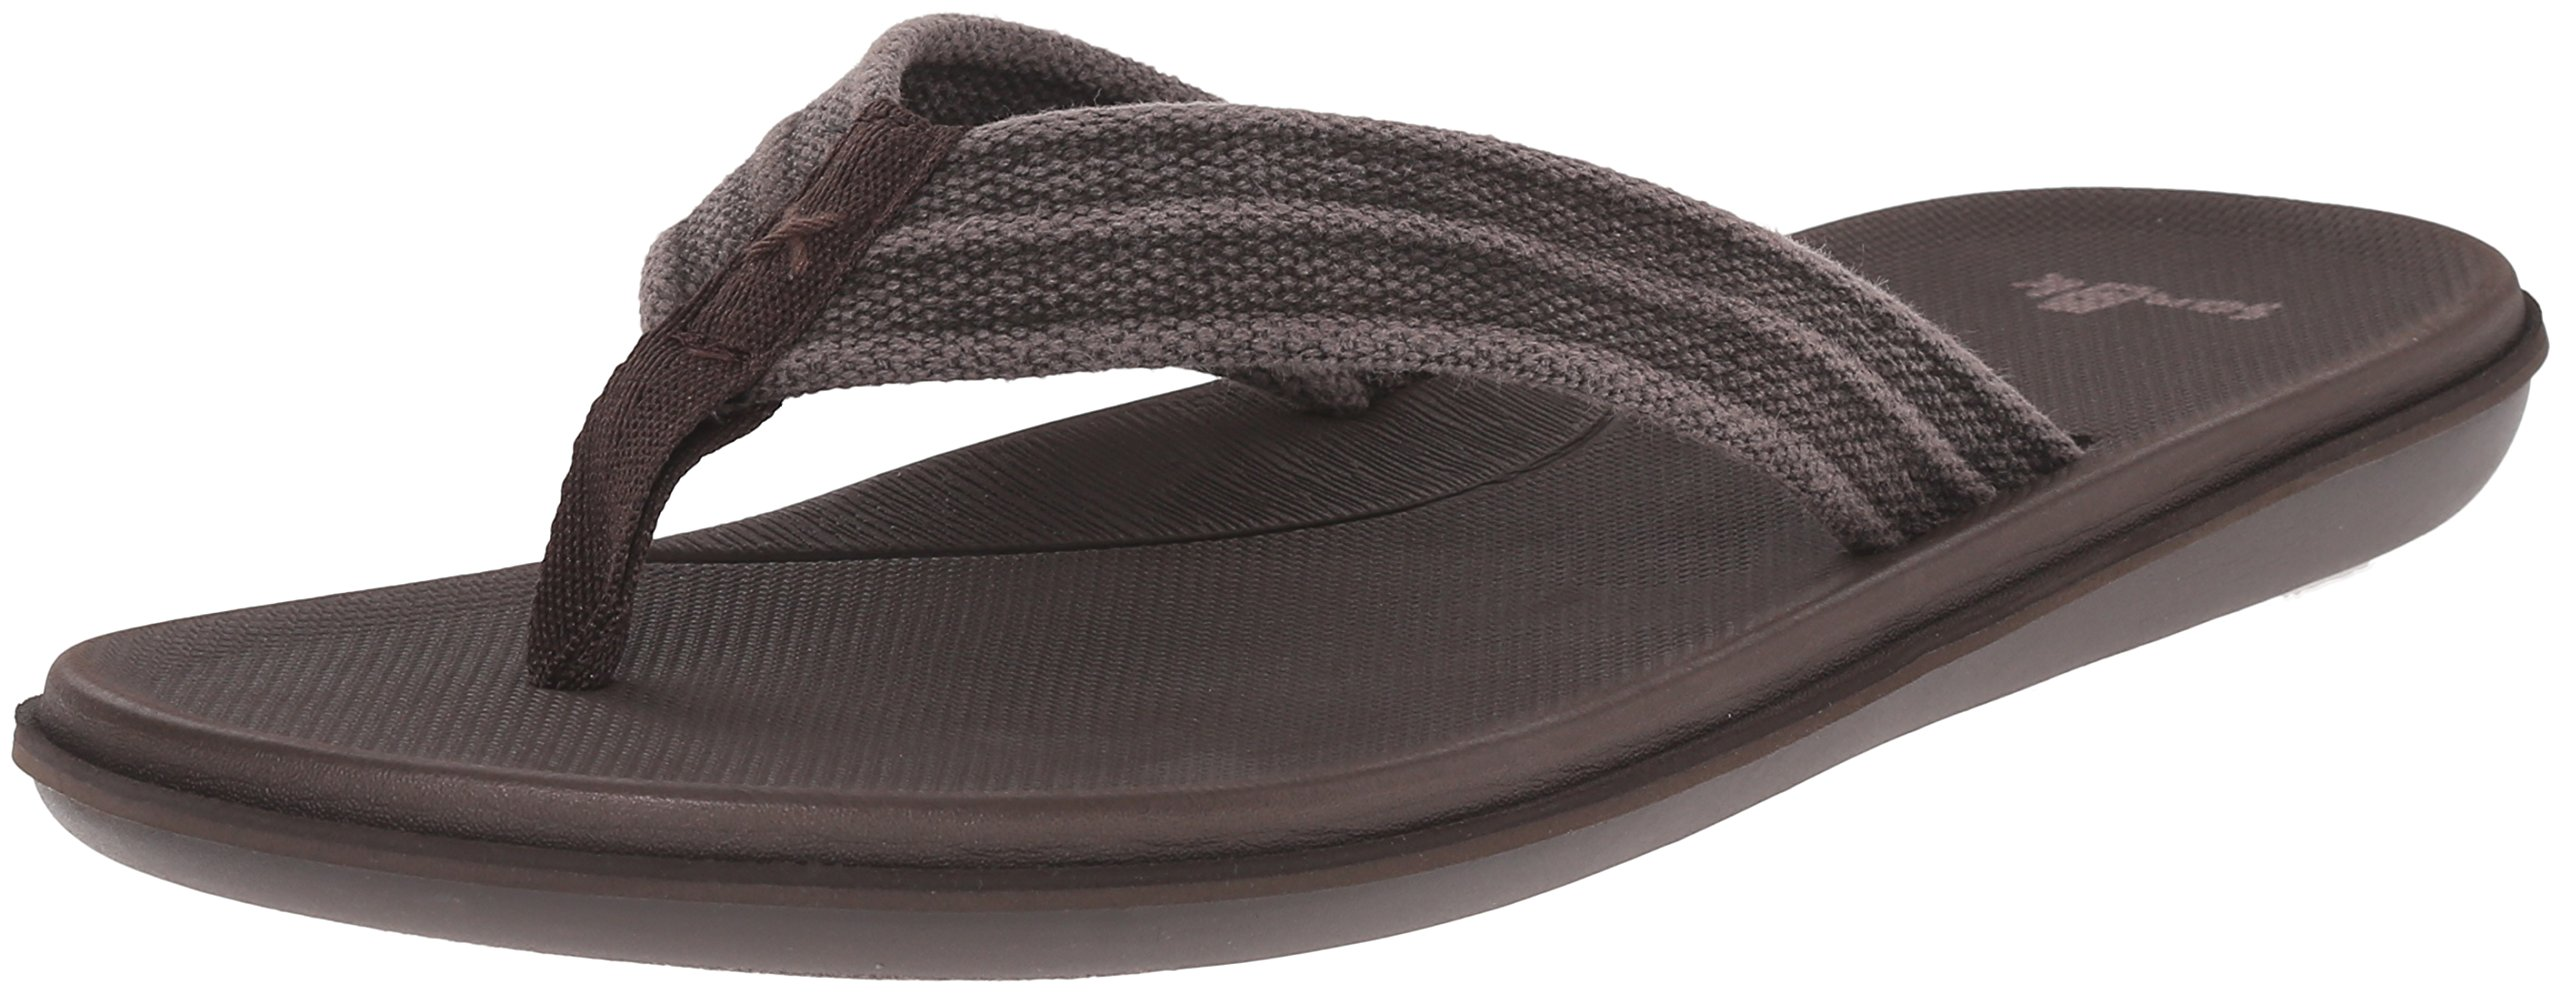 Sanuk Men's Planer Webbing Flip Flop, Brown, 13 M US